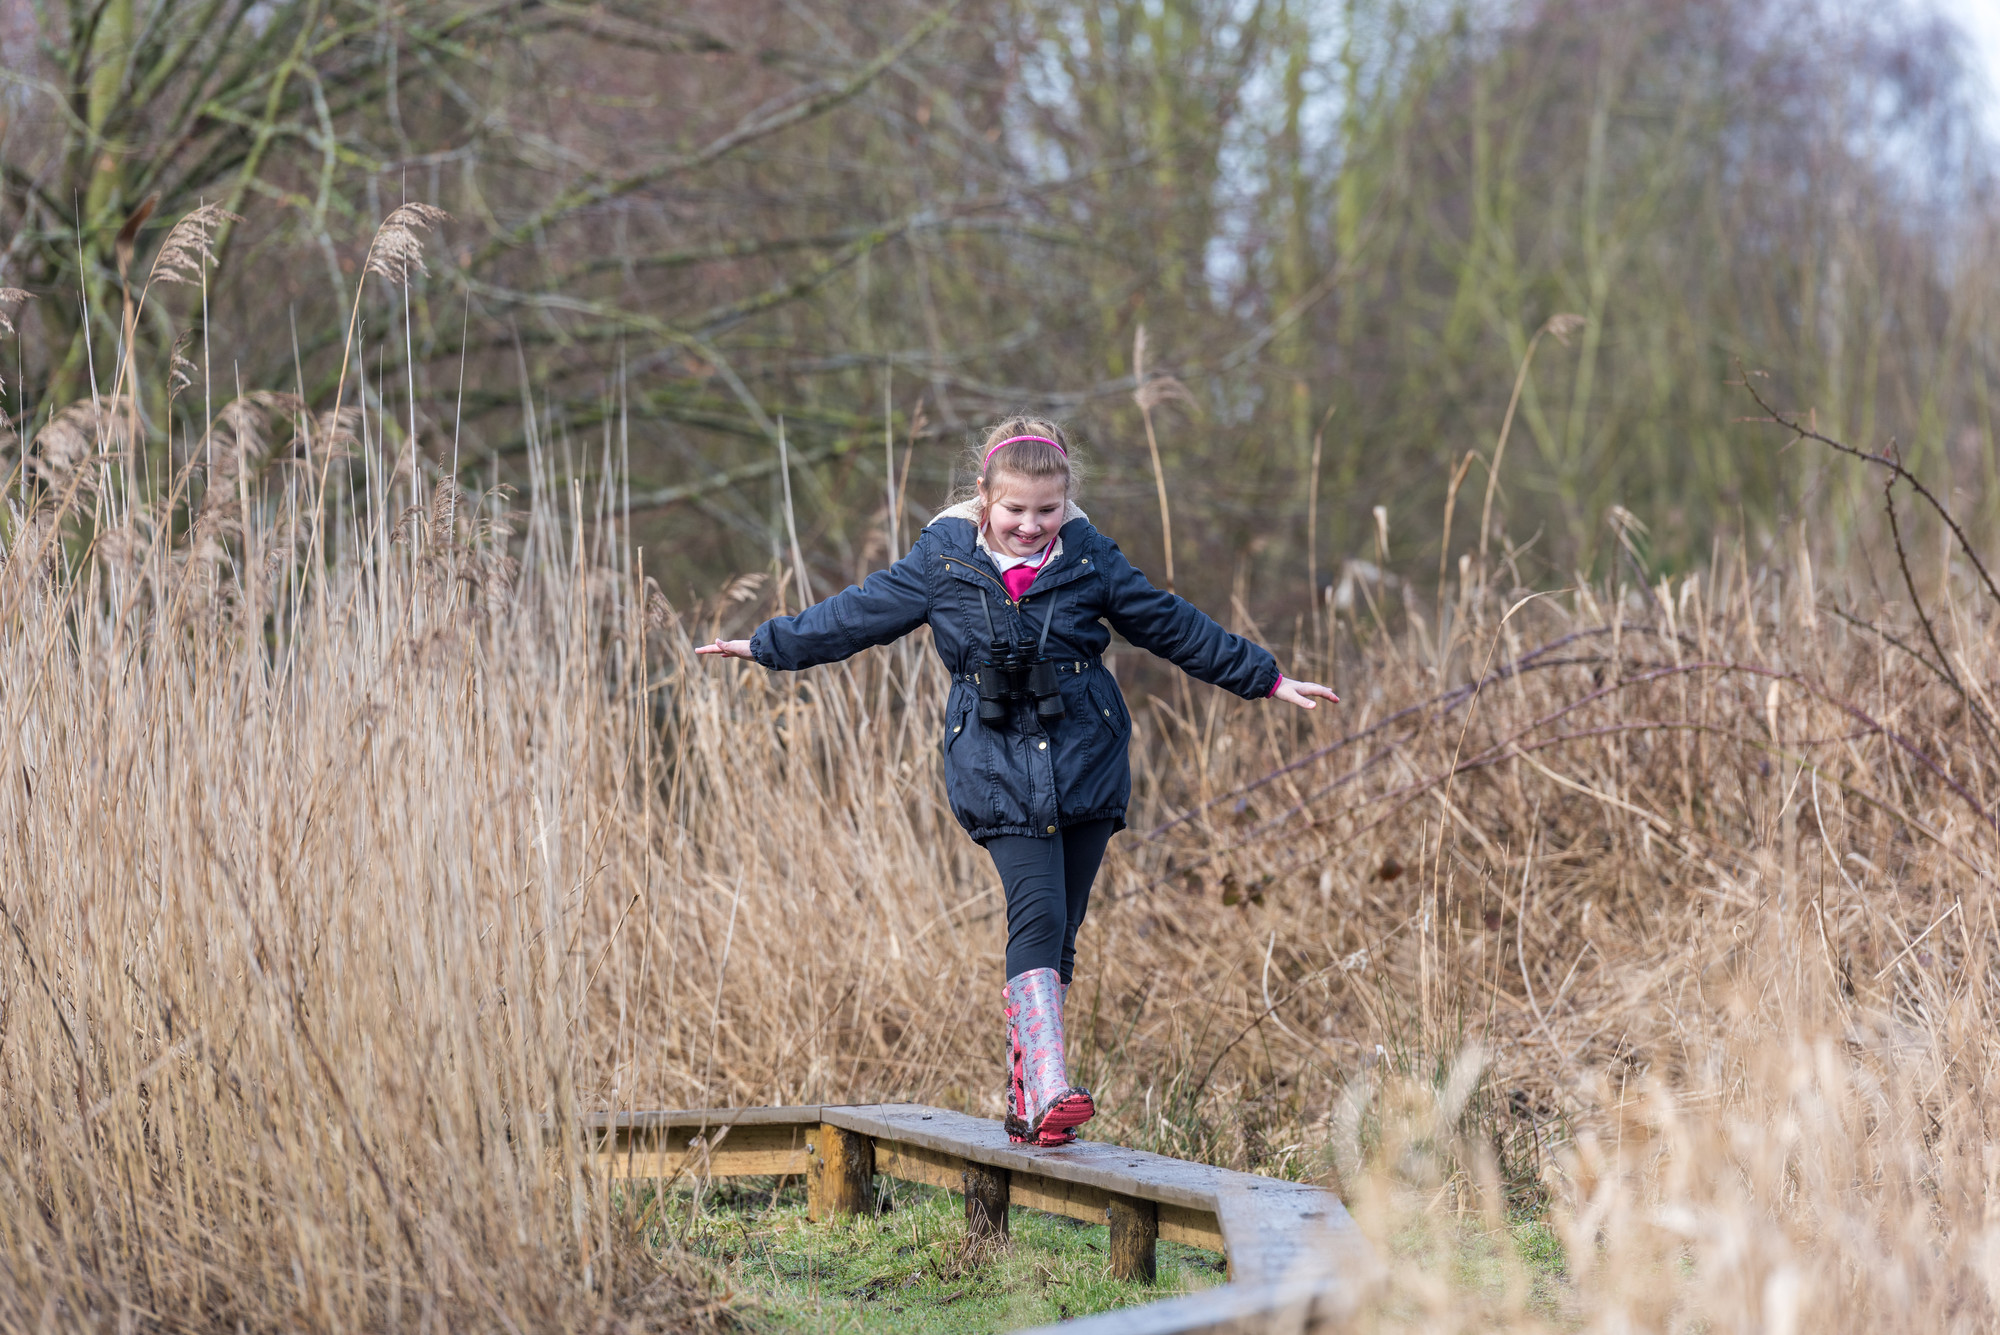 Go on a Wild Walk at WWT London Wetland Centre